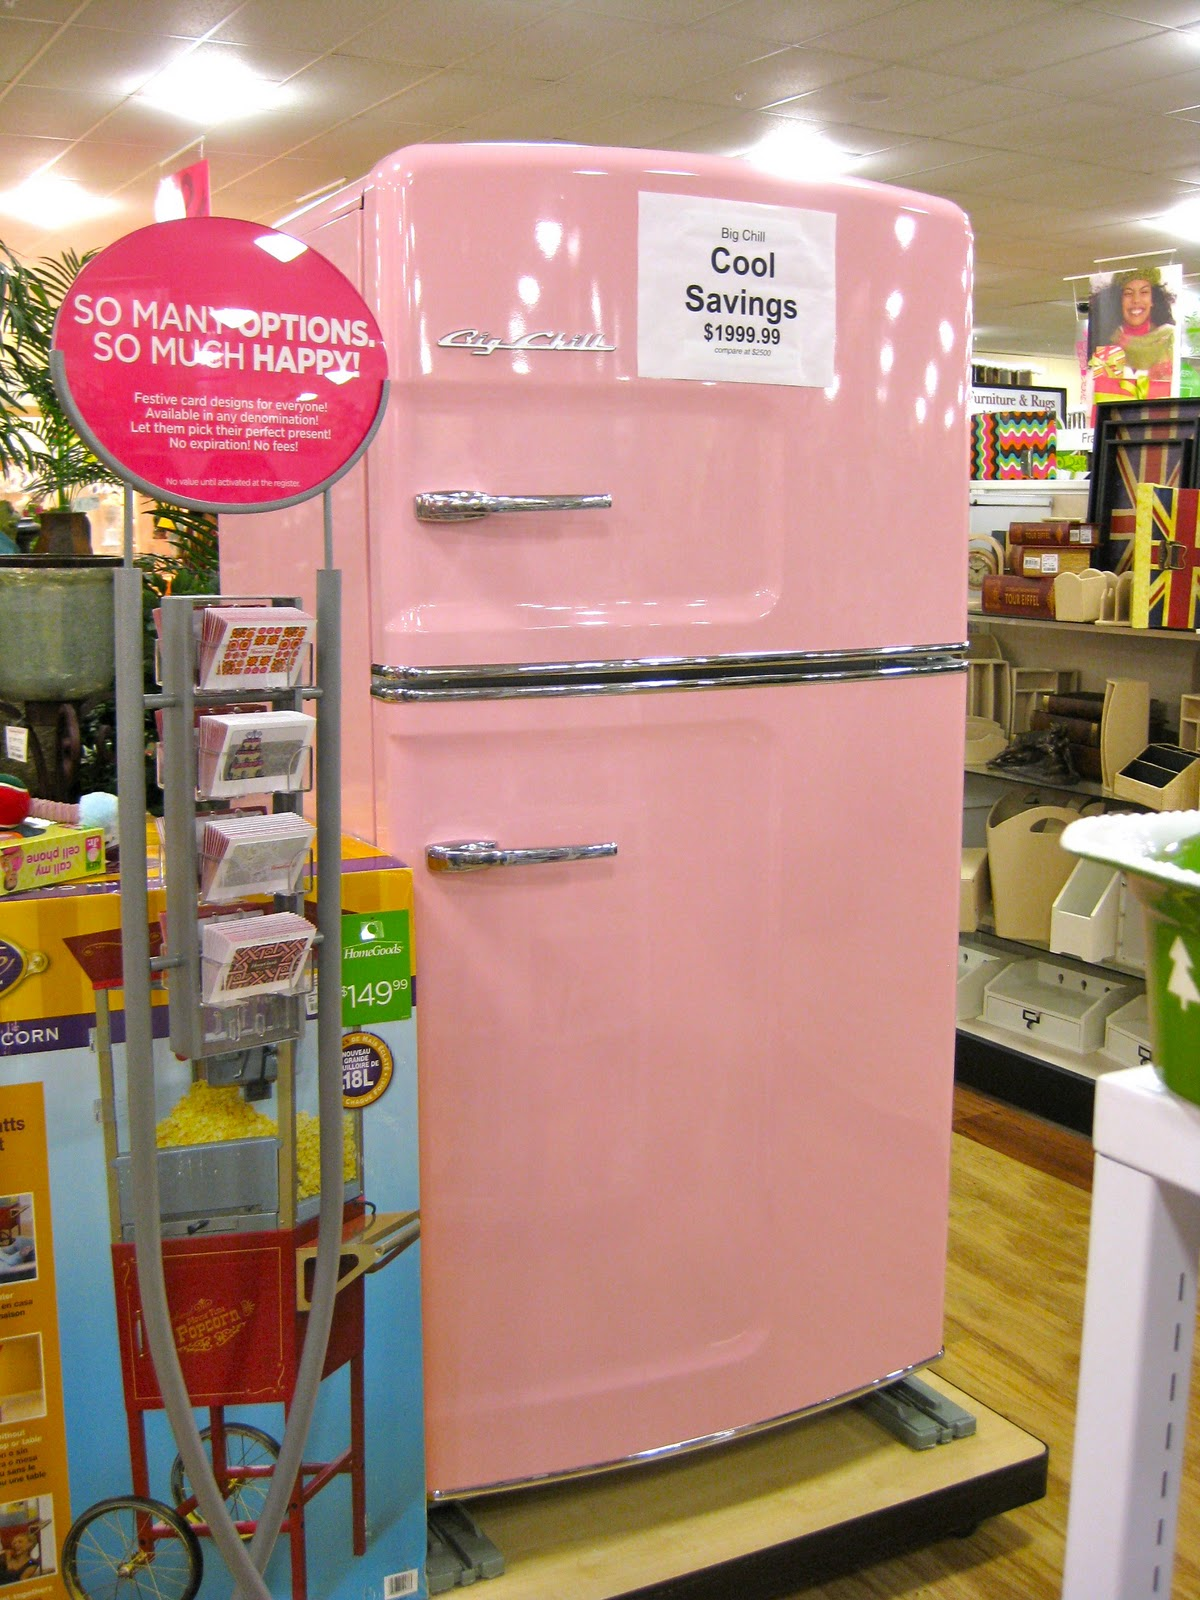 CanadianPrep: Spotted: Pink Finds in Florida